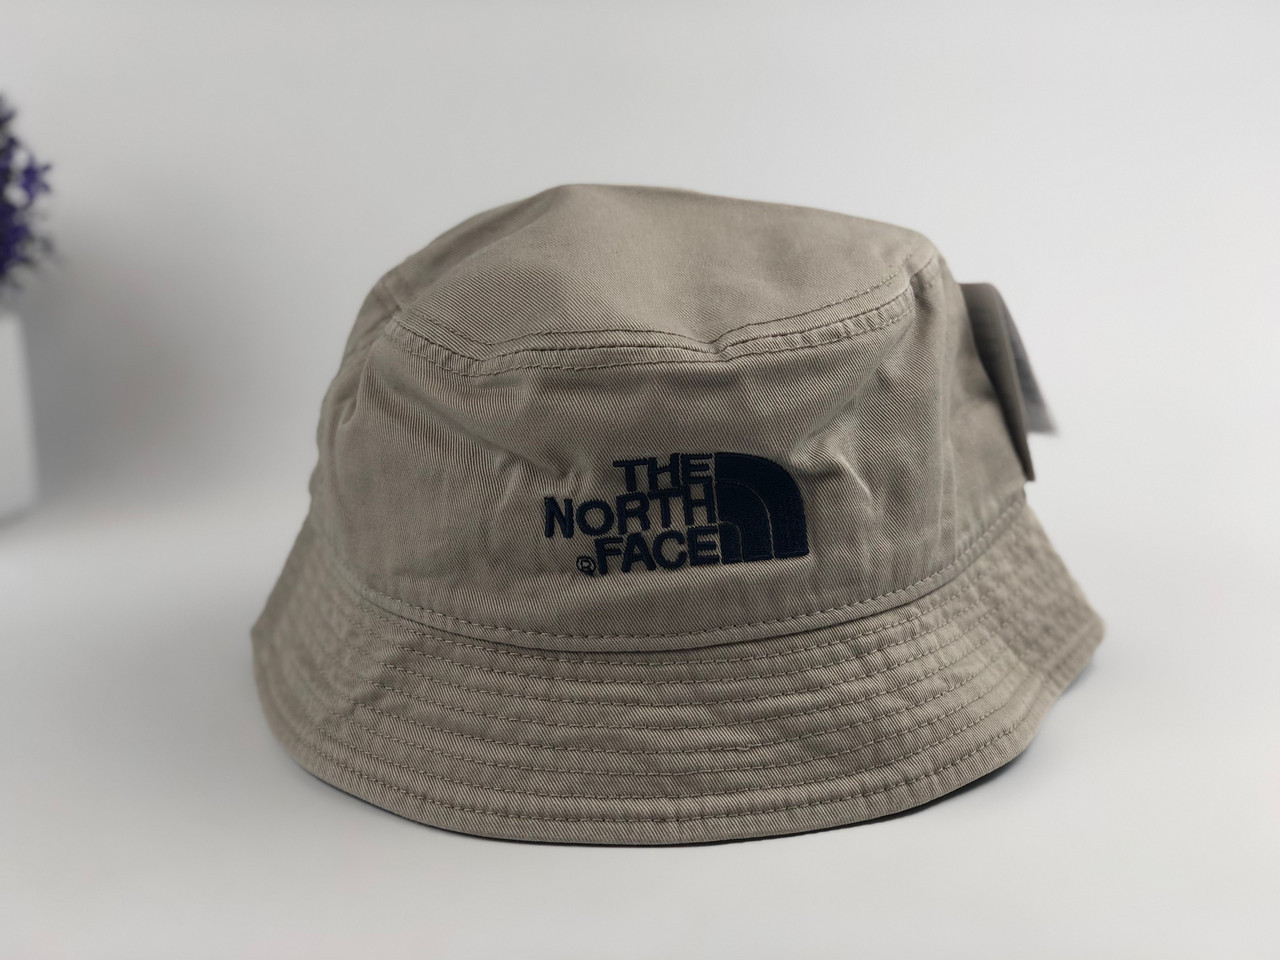 Панама The North Face - бежевая